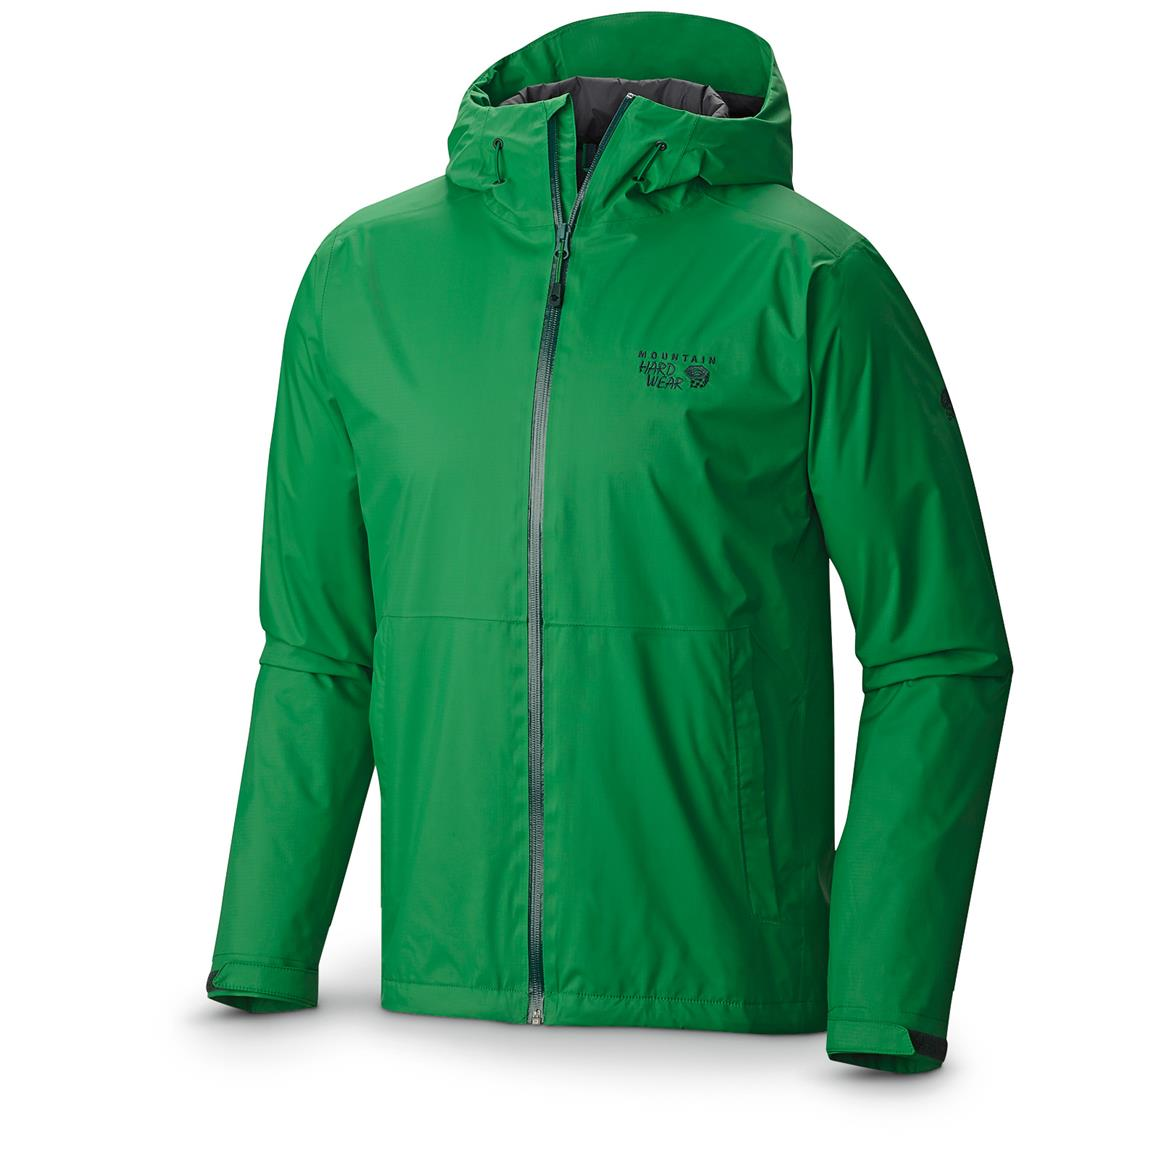 Mountain Hardwear Men's Finder Jacket, Waterproof, Breathable, Serpent Green